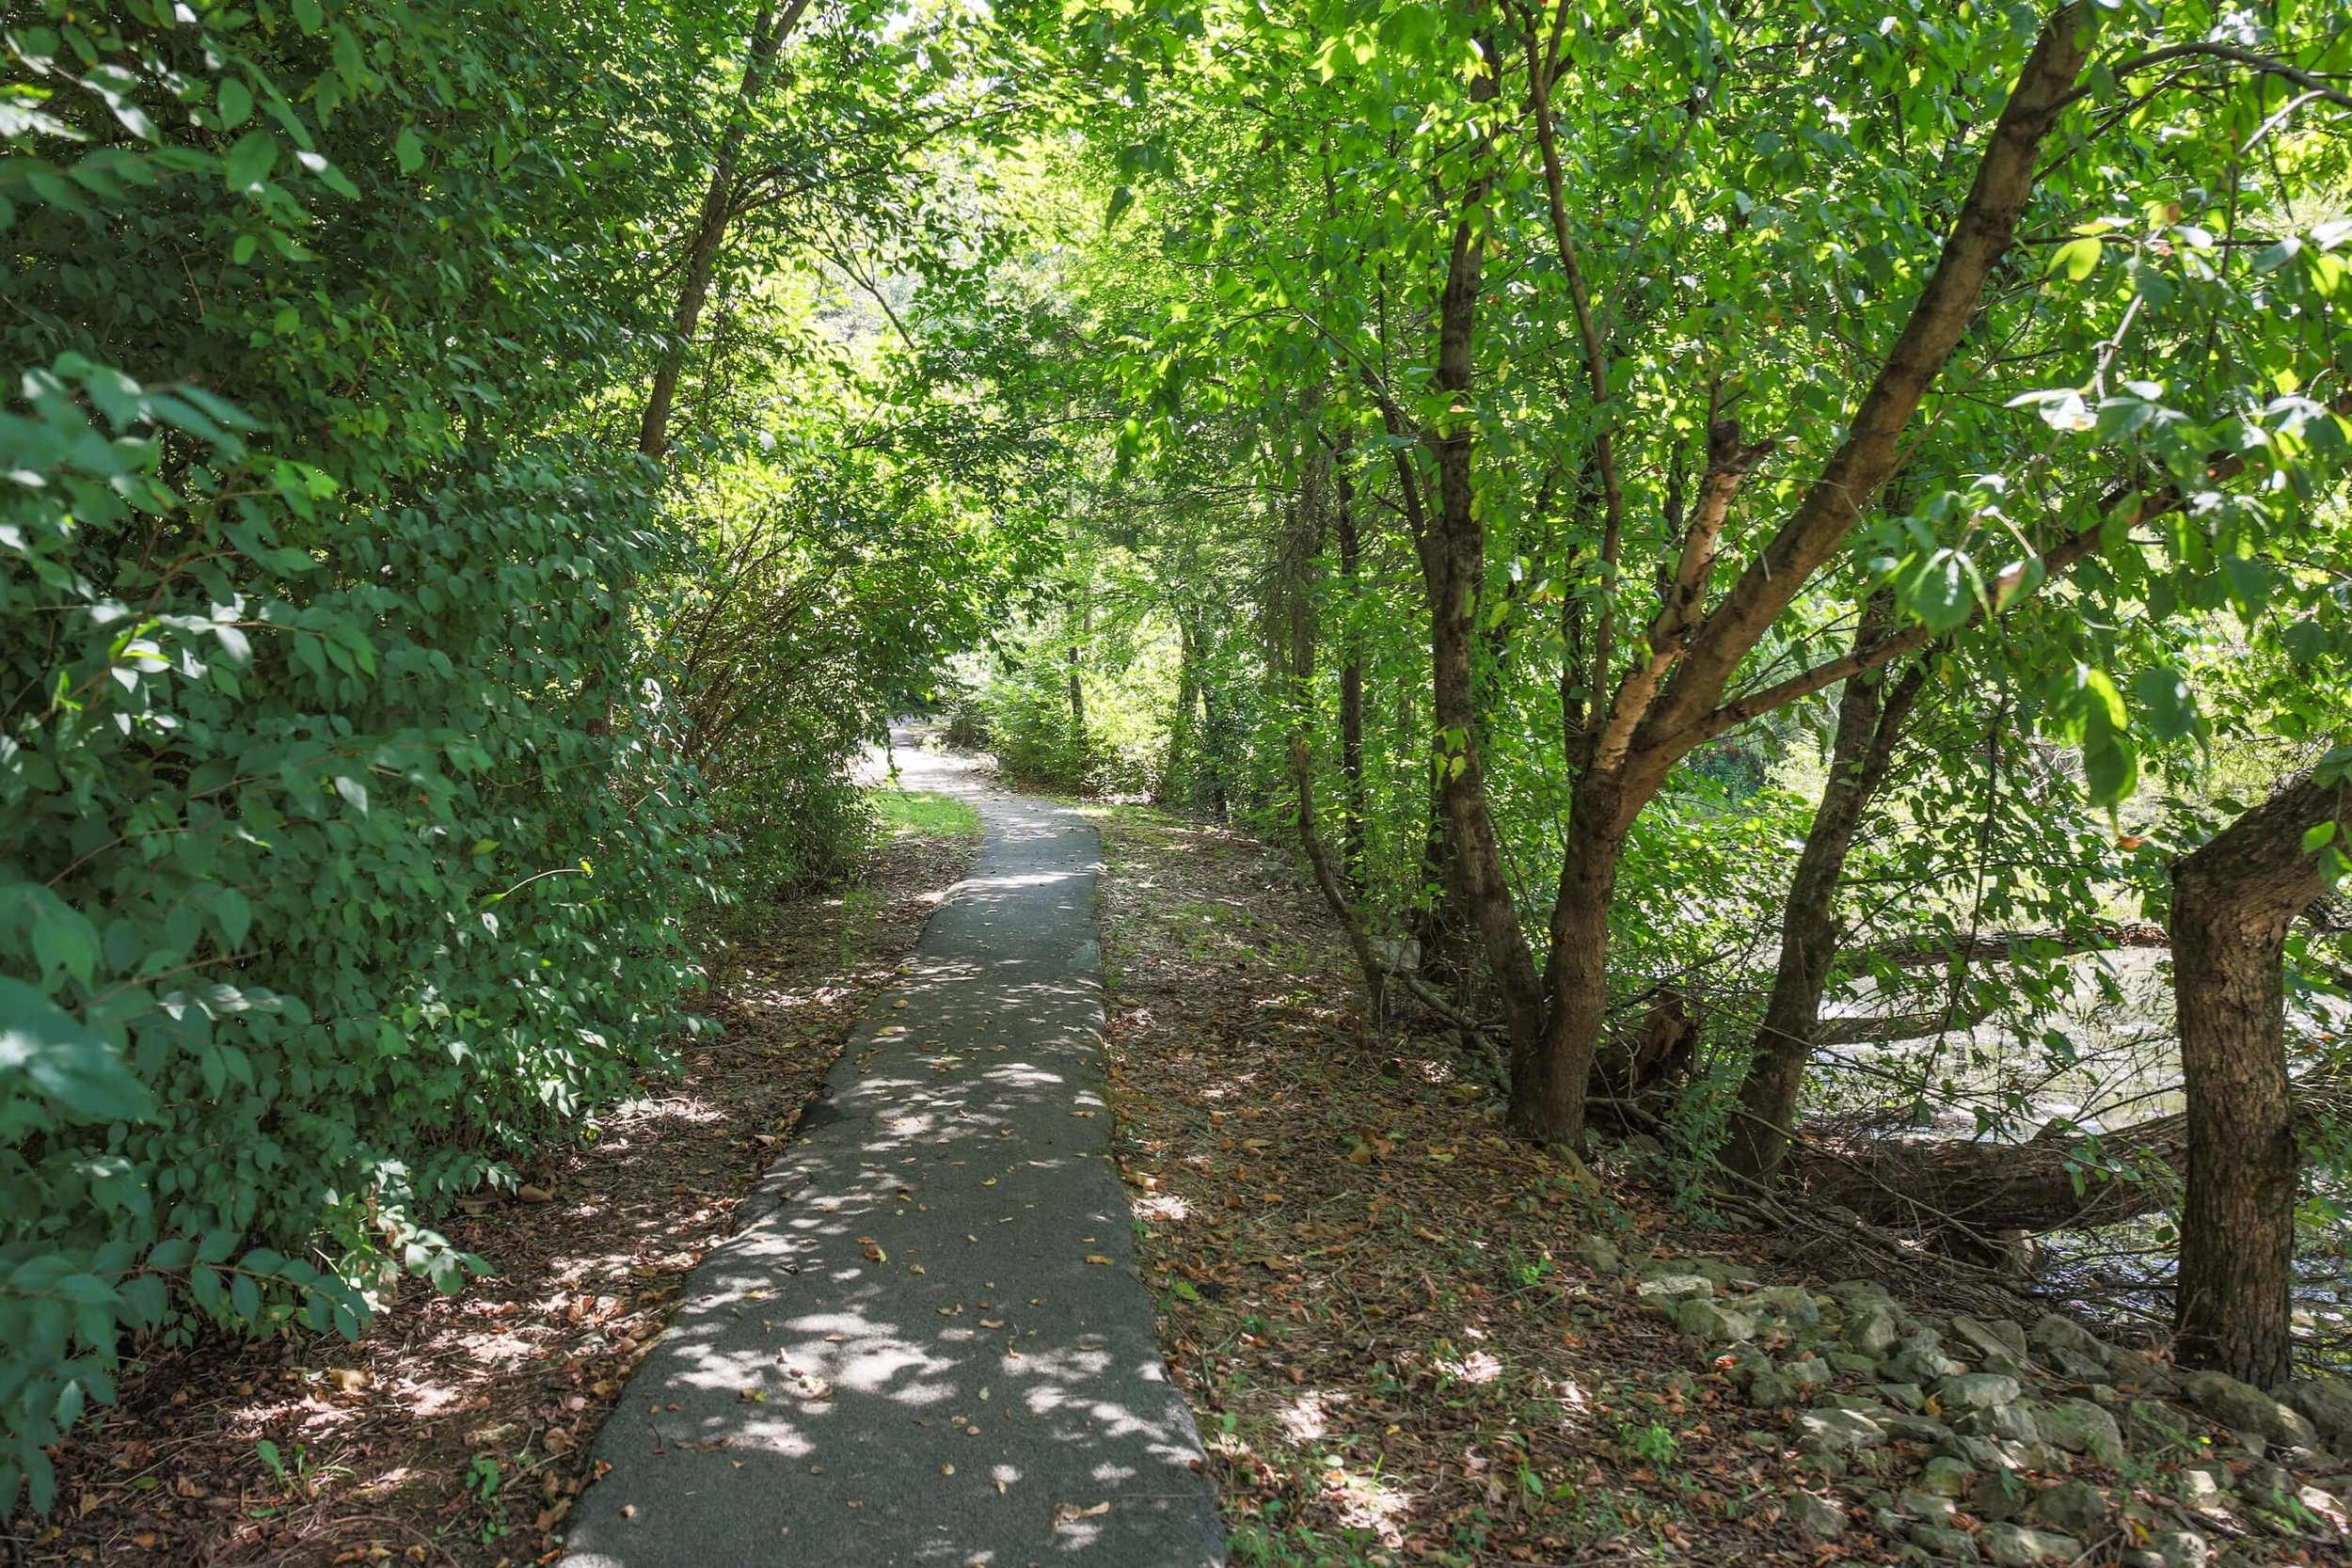 Get fit outdoors on the jogging trails through the woods with fresh air and peaceful scenery.